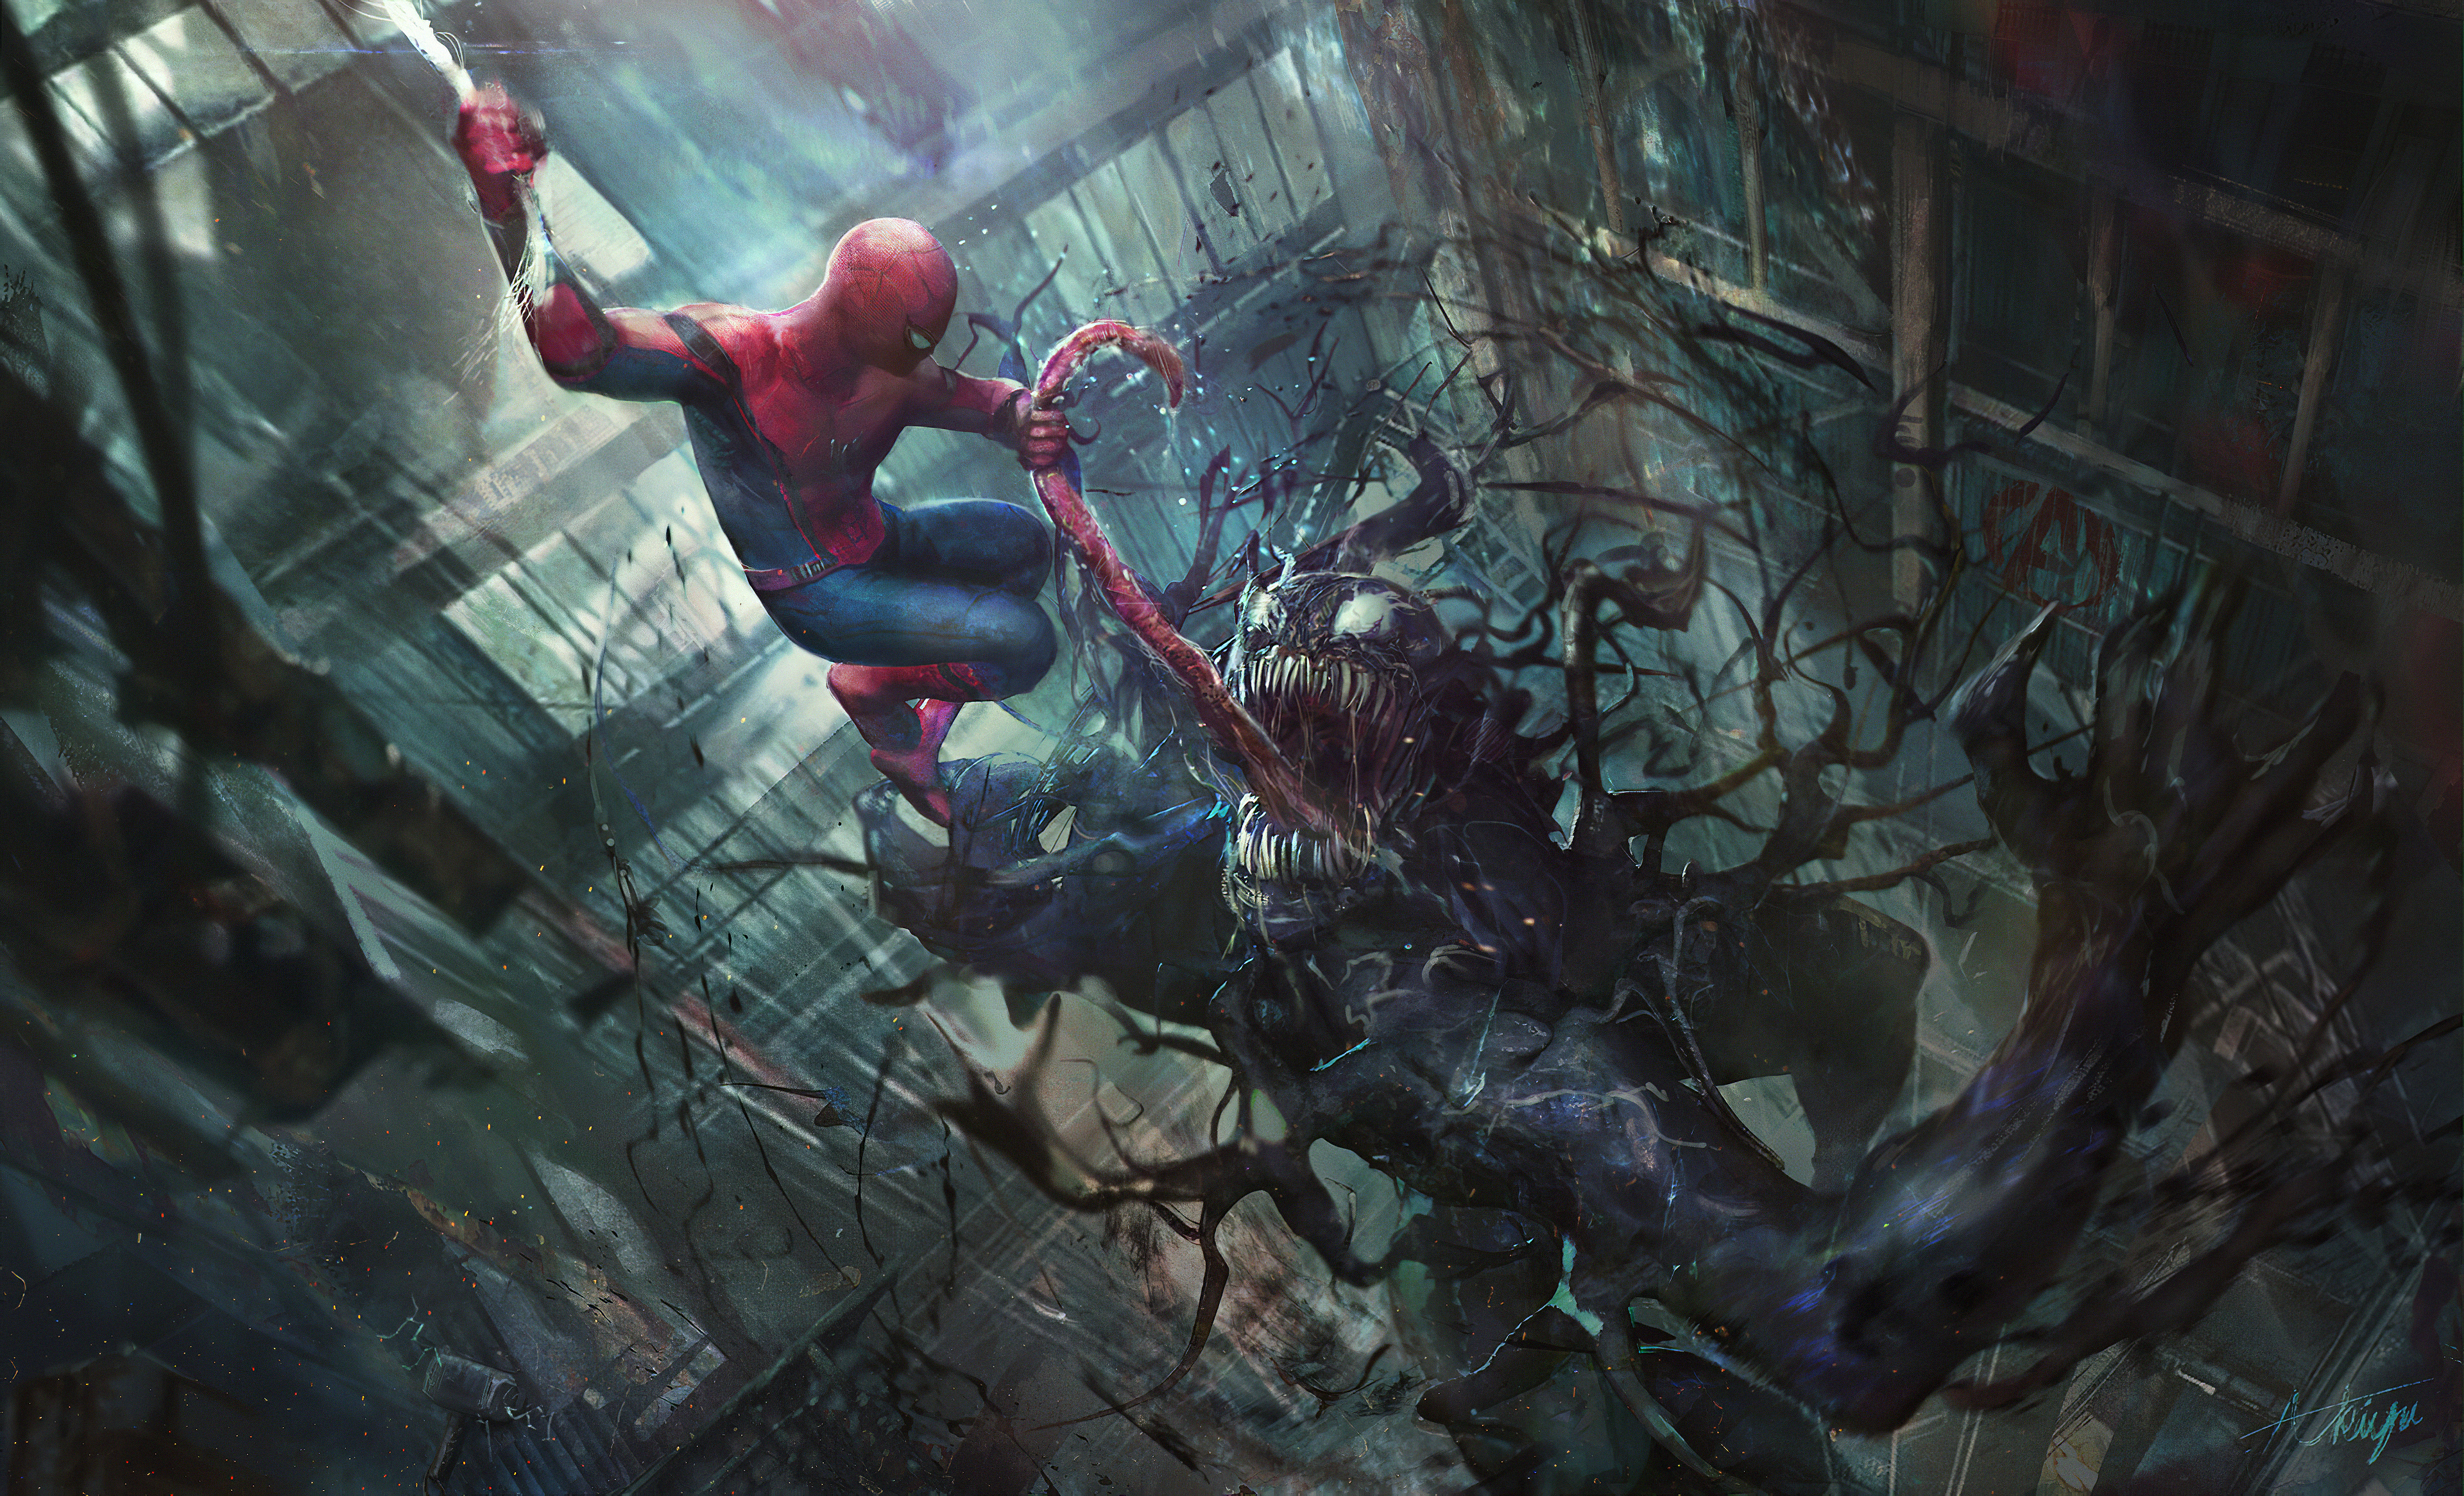 venom and spider man 1576096206 - Venom And Spider Man - Venom And Spider Man wallpaper hd 4k